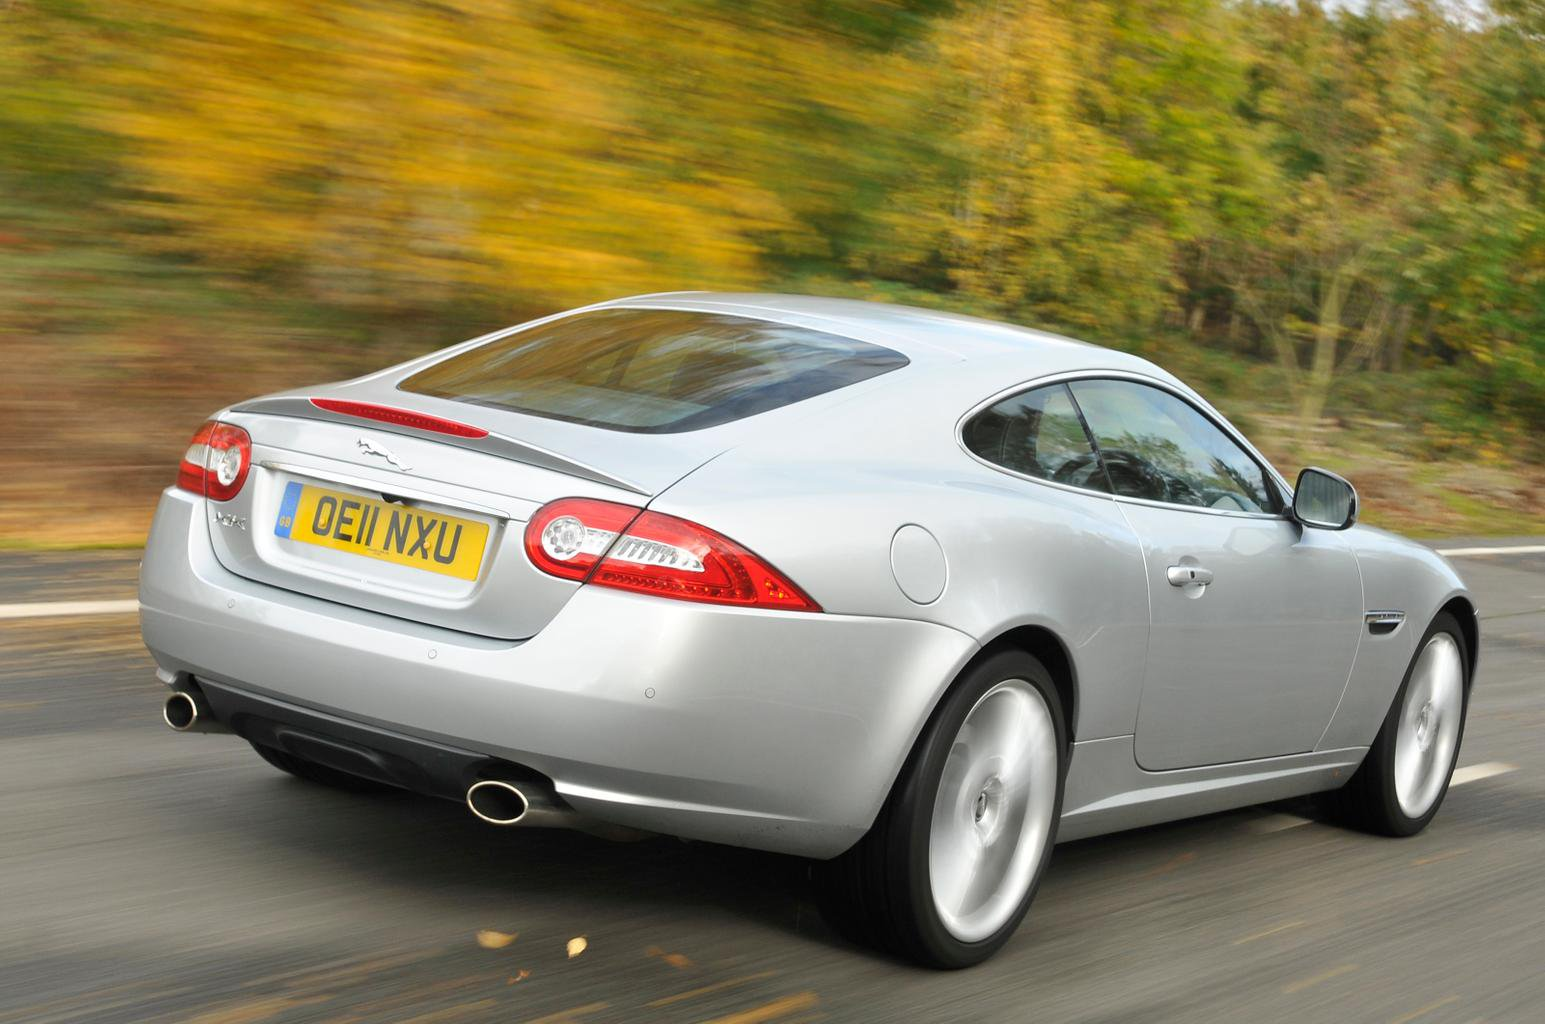 Used BMW 6 Series Coupe vs Jaguar XK